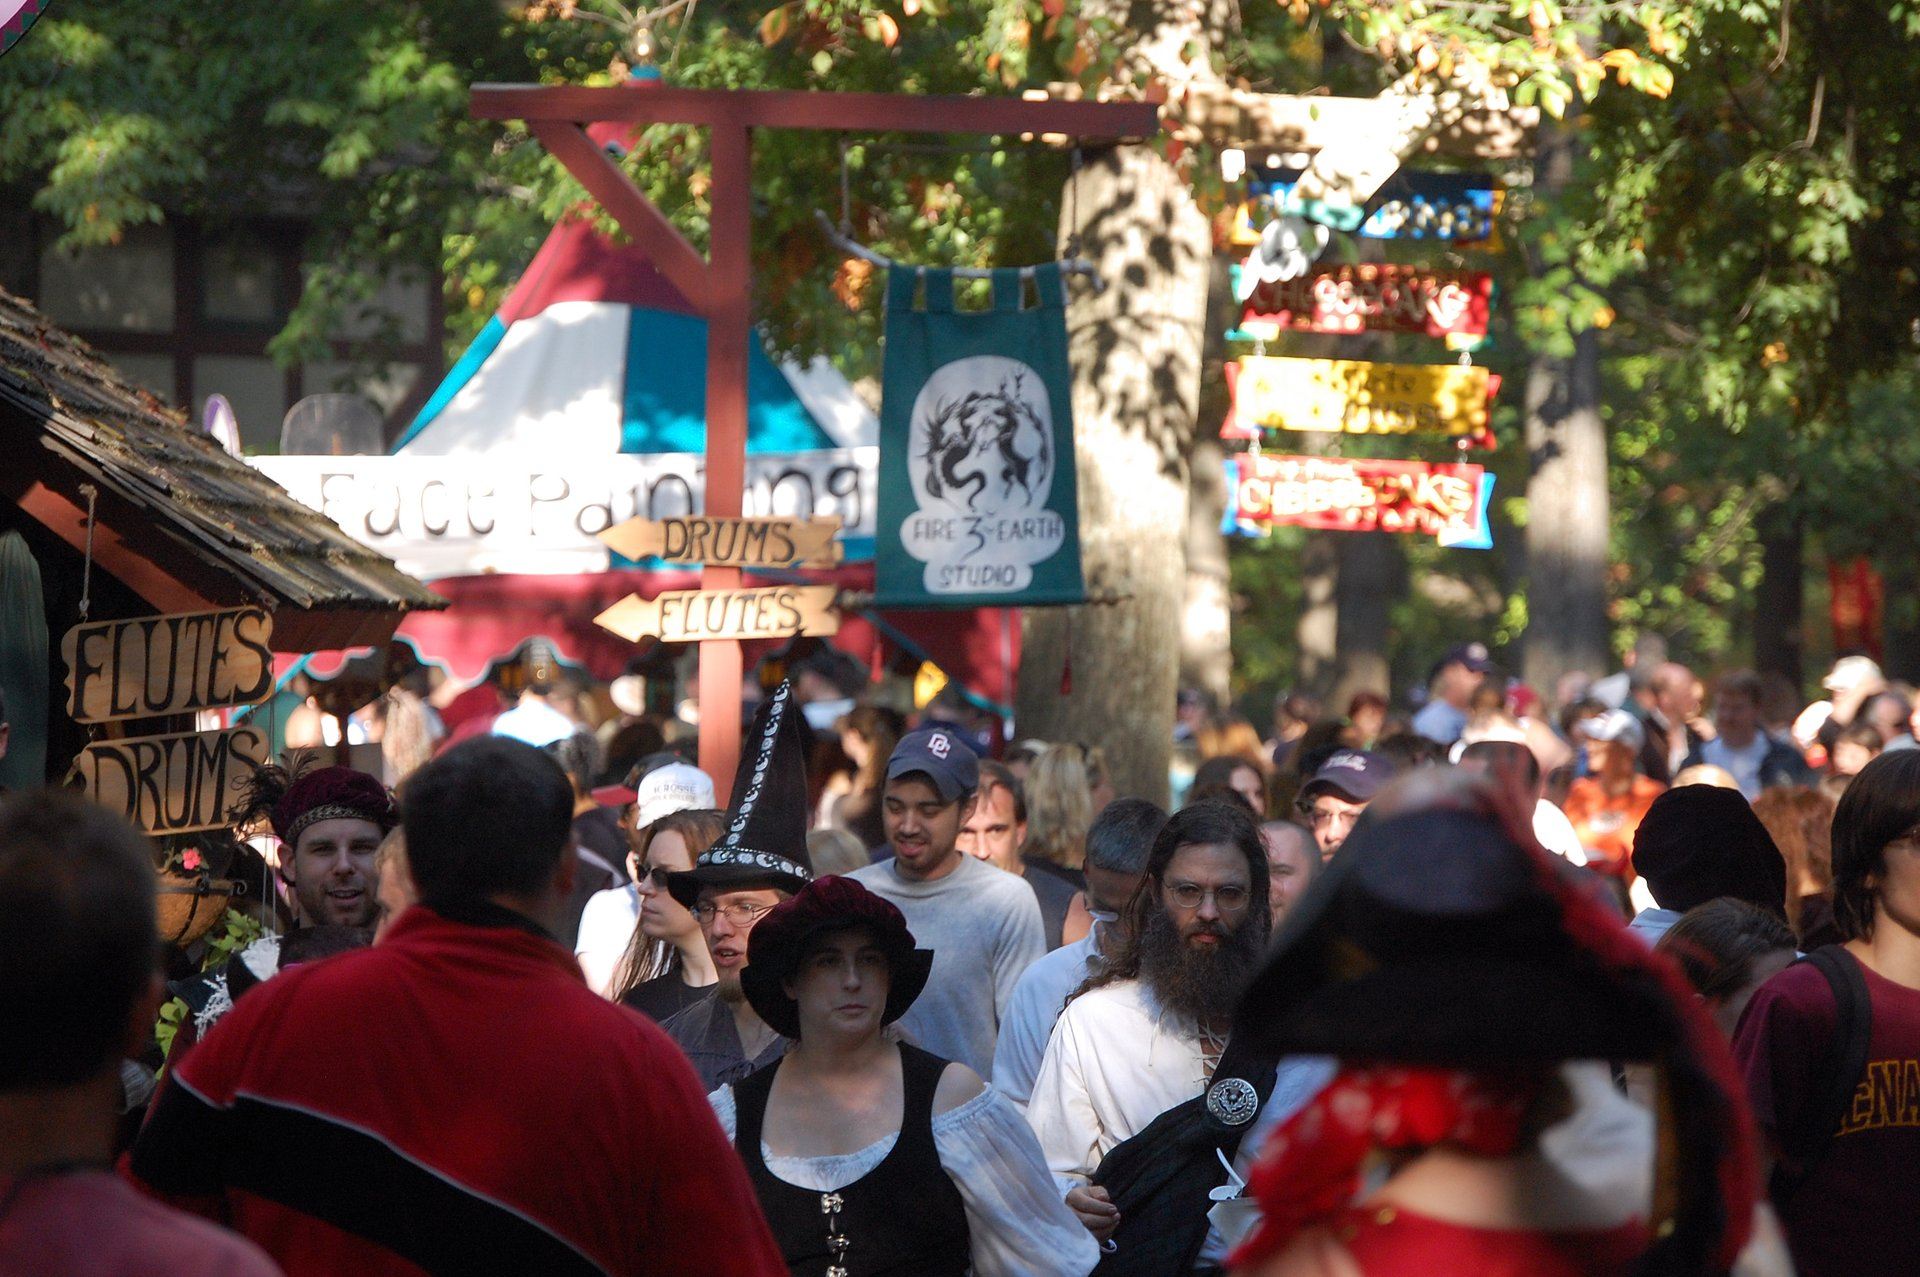 Best time for Maryland Renaissance Festival in Maryland 2020